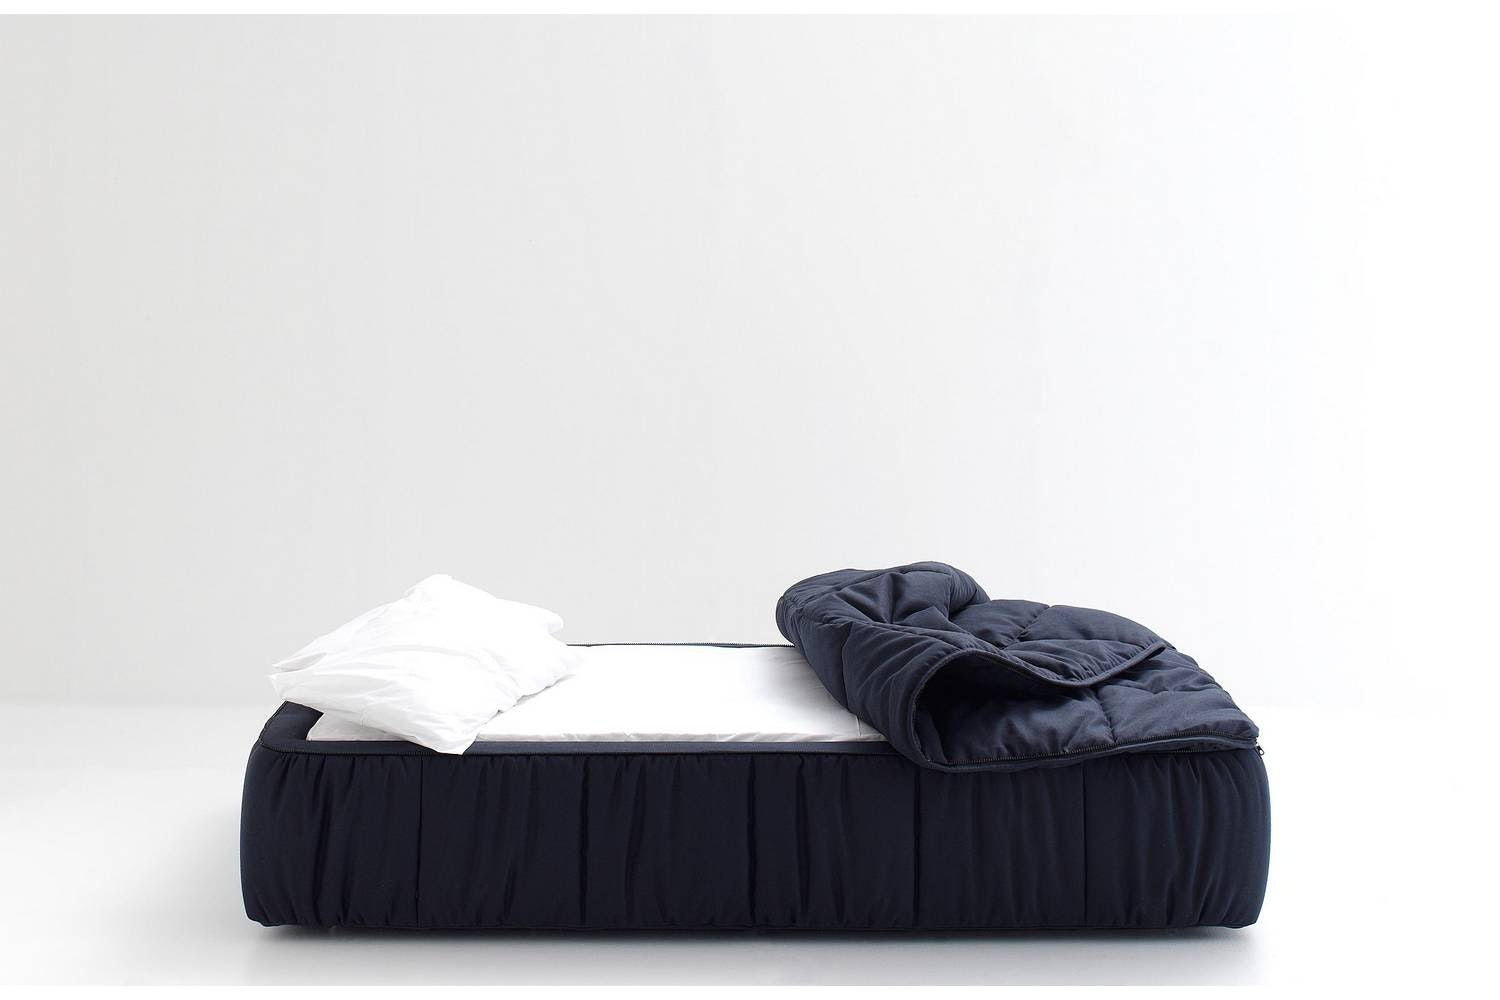 Strips Bed by Cini Boeri for Arflex